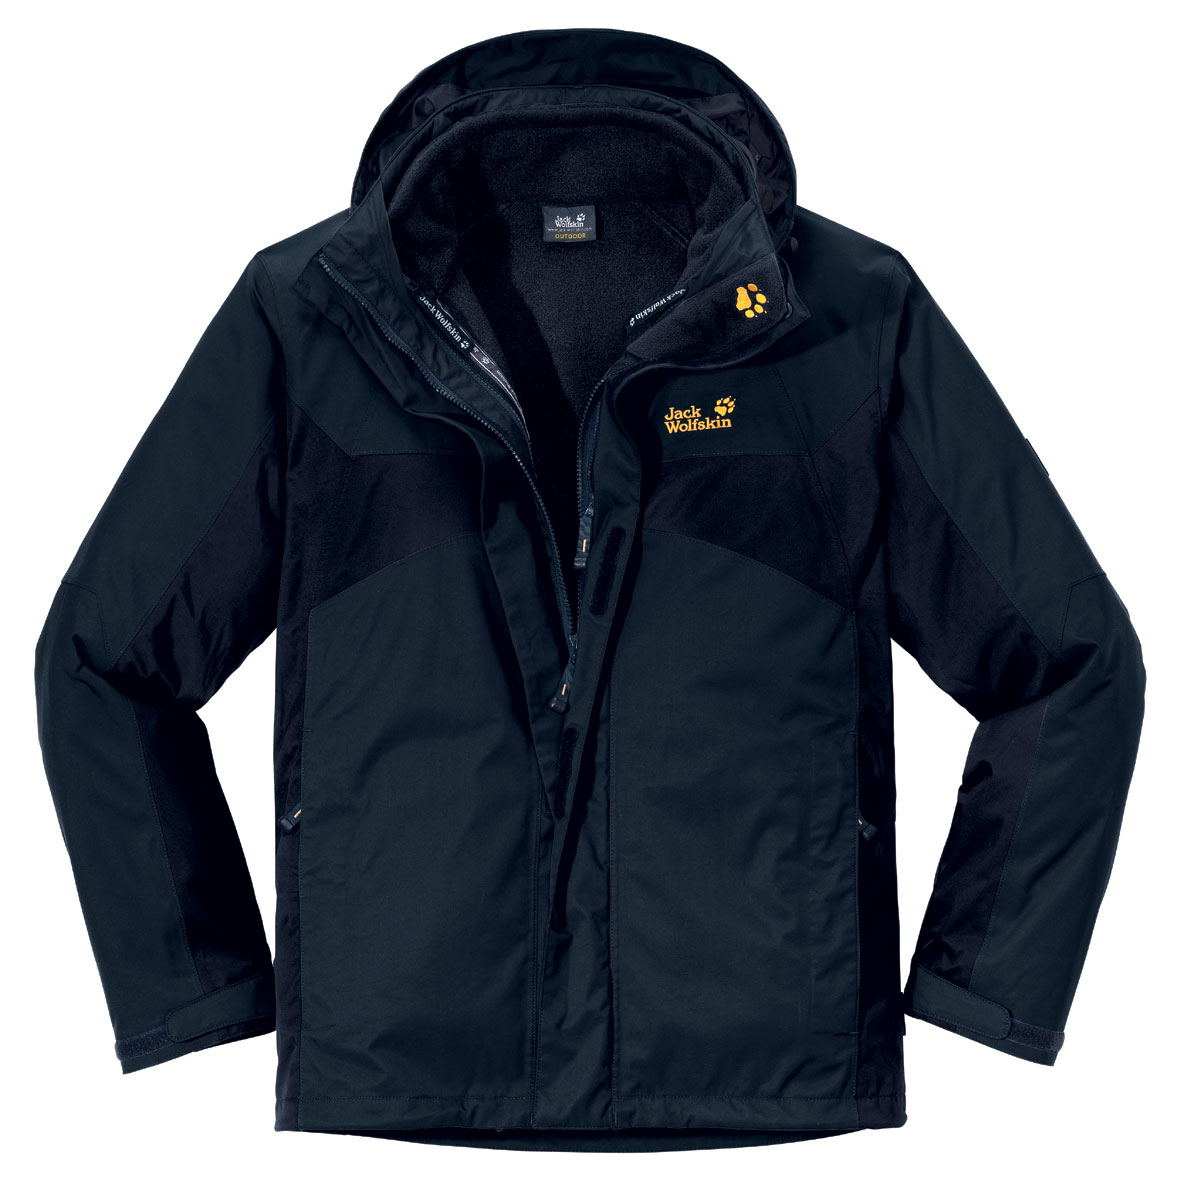 Jack wolfskin herren jacke wattiert north country test